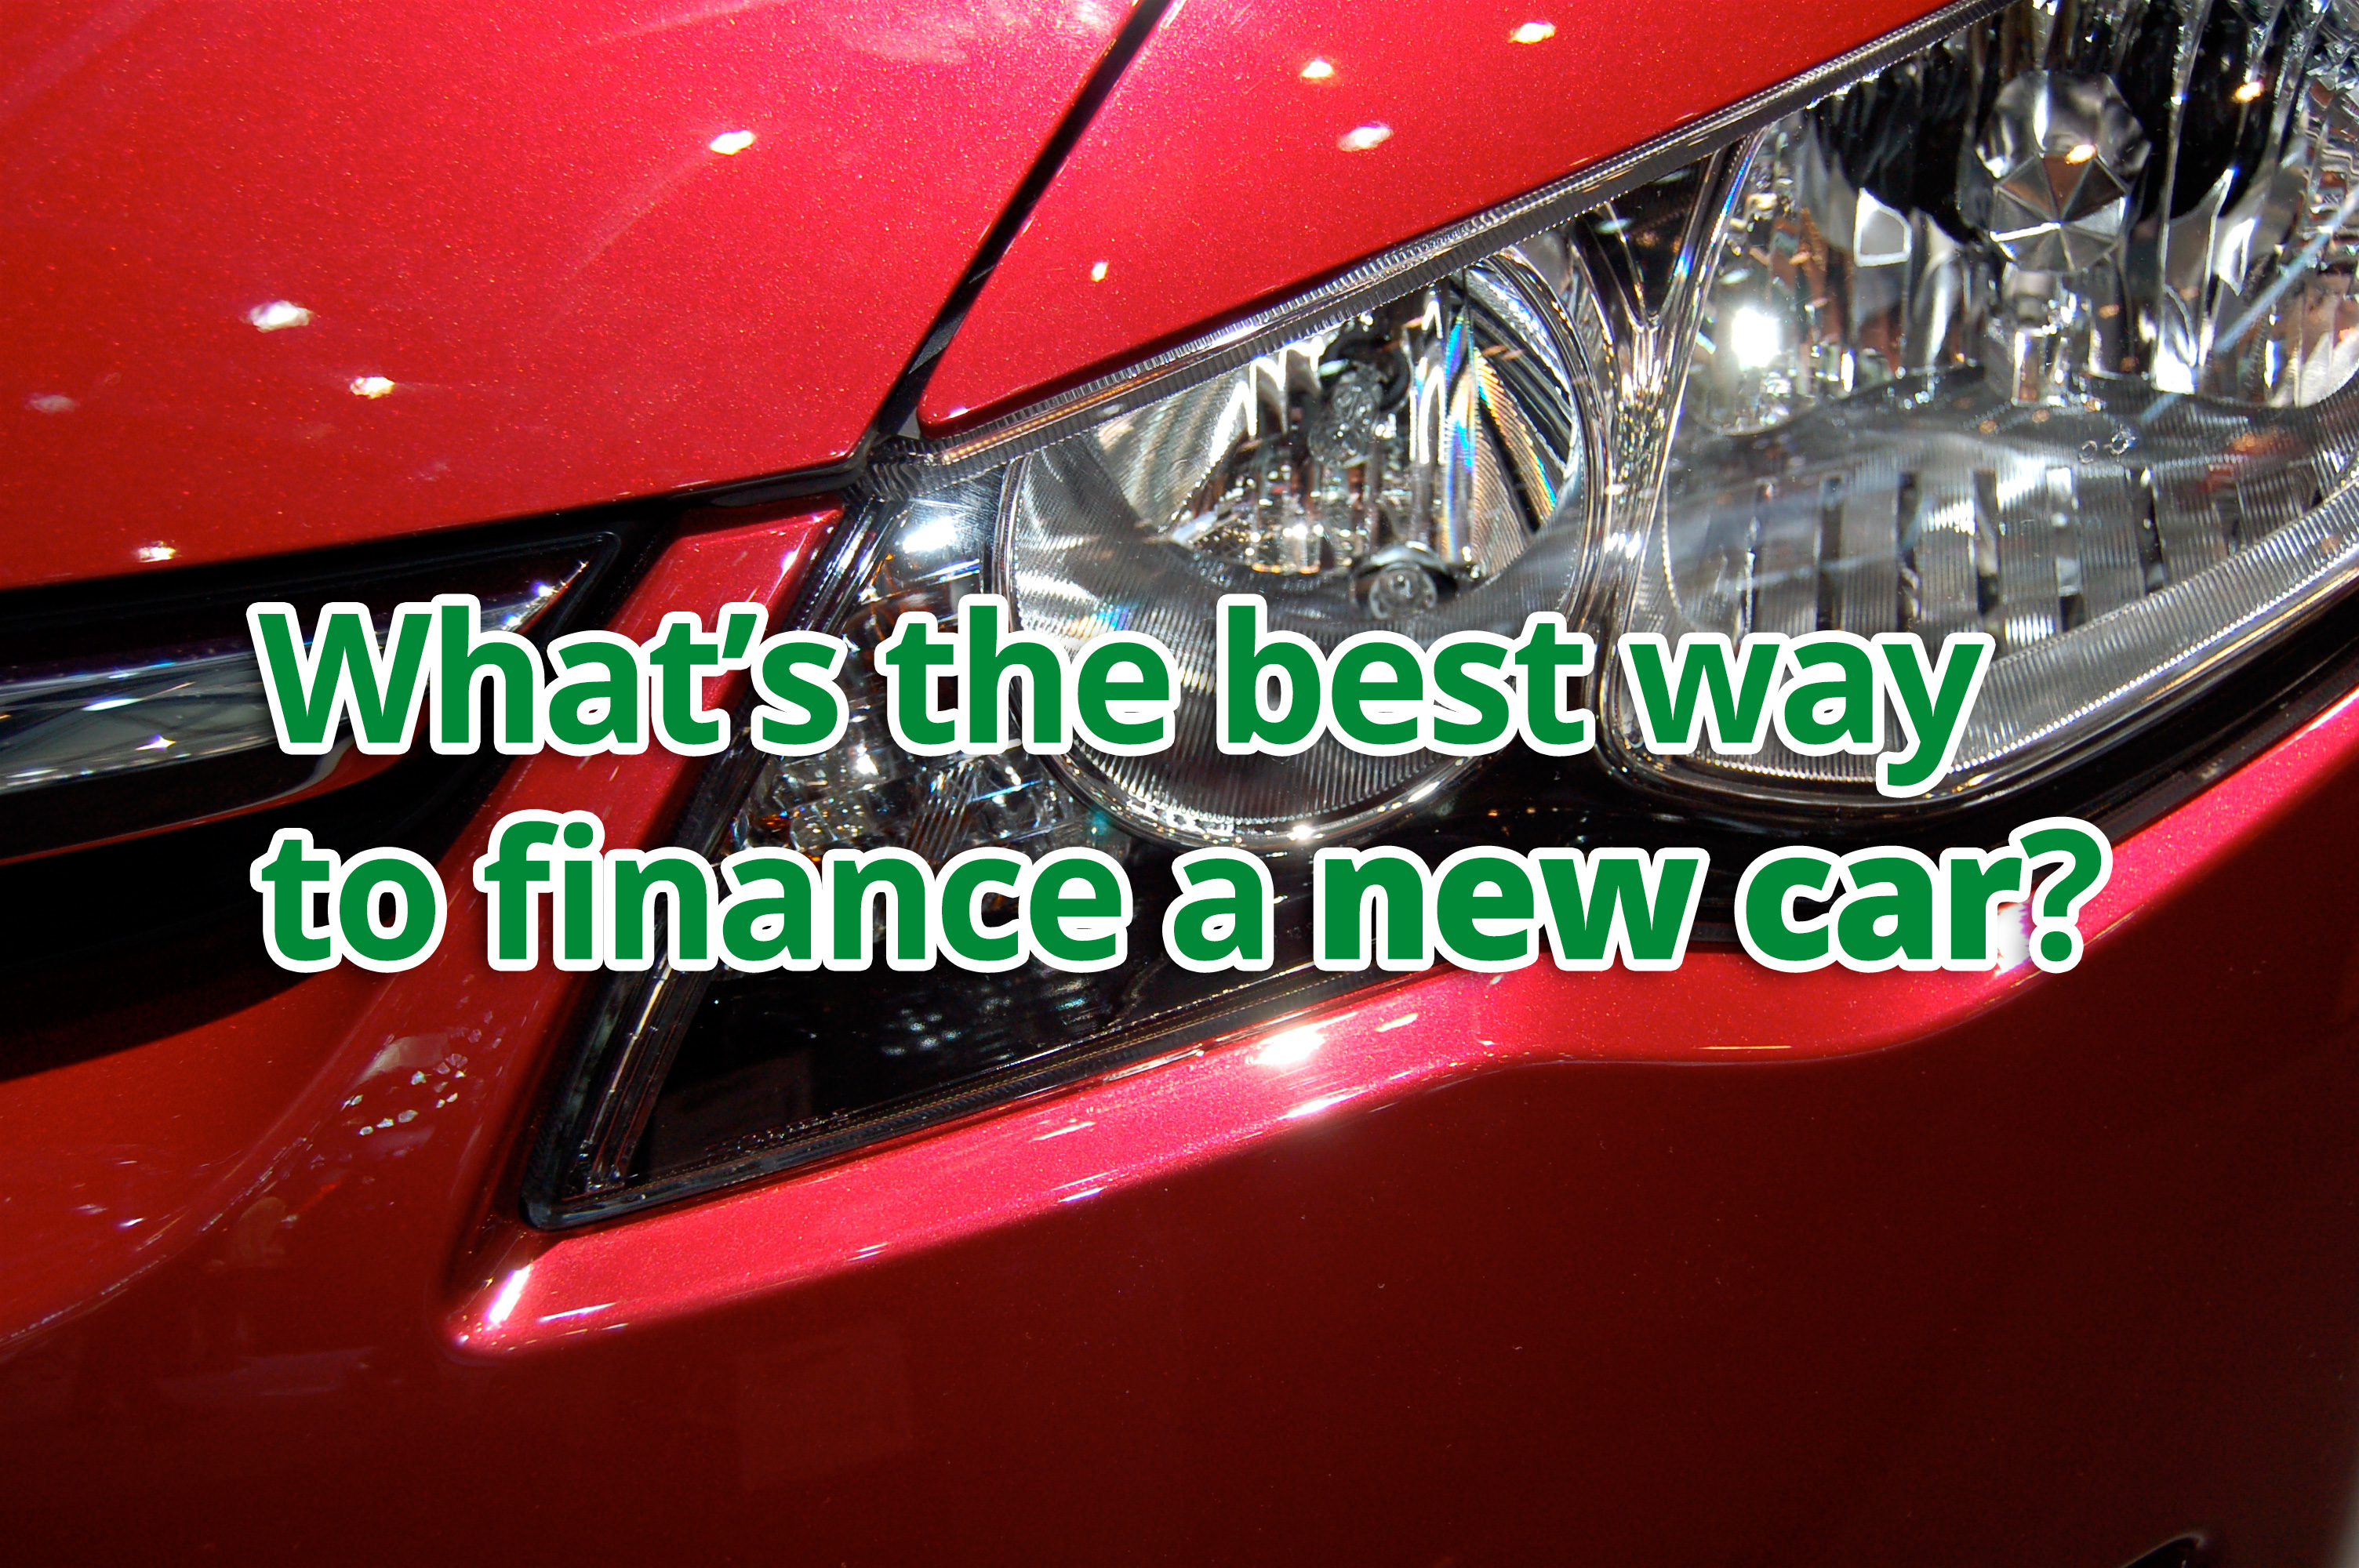 What's the best way to finance a new car?